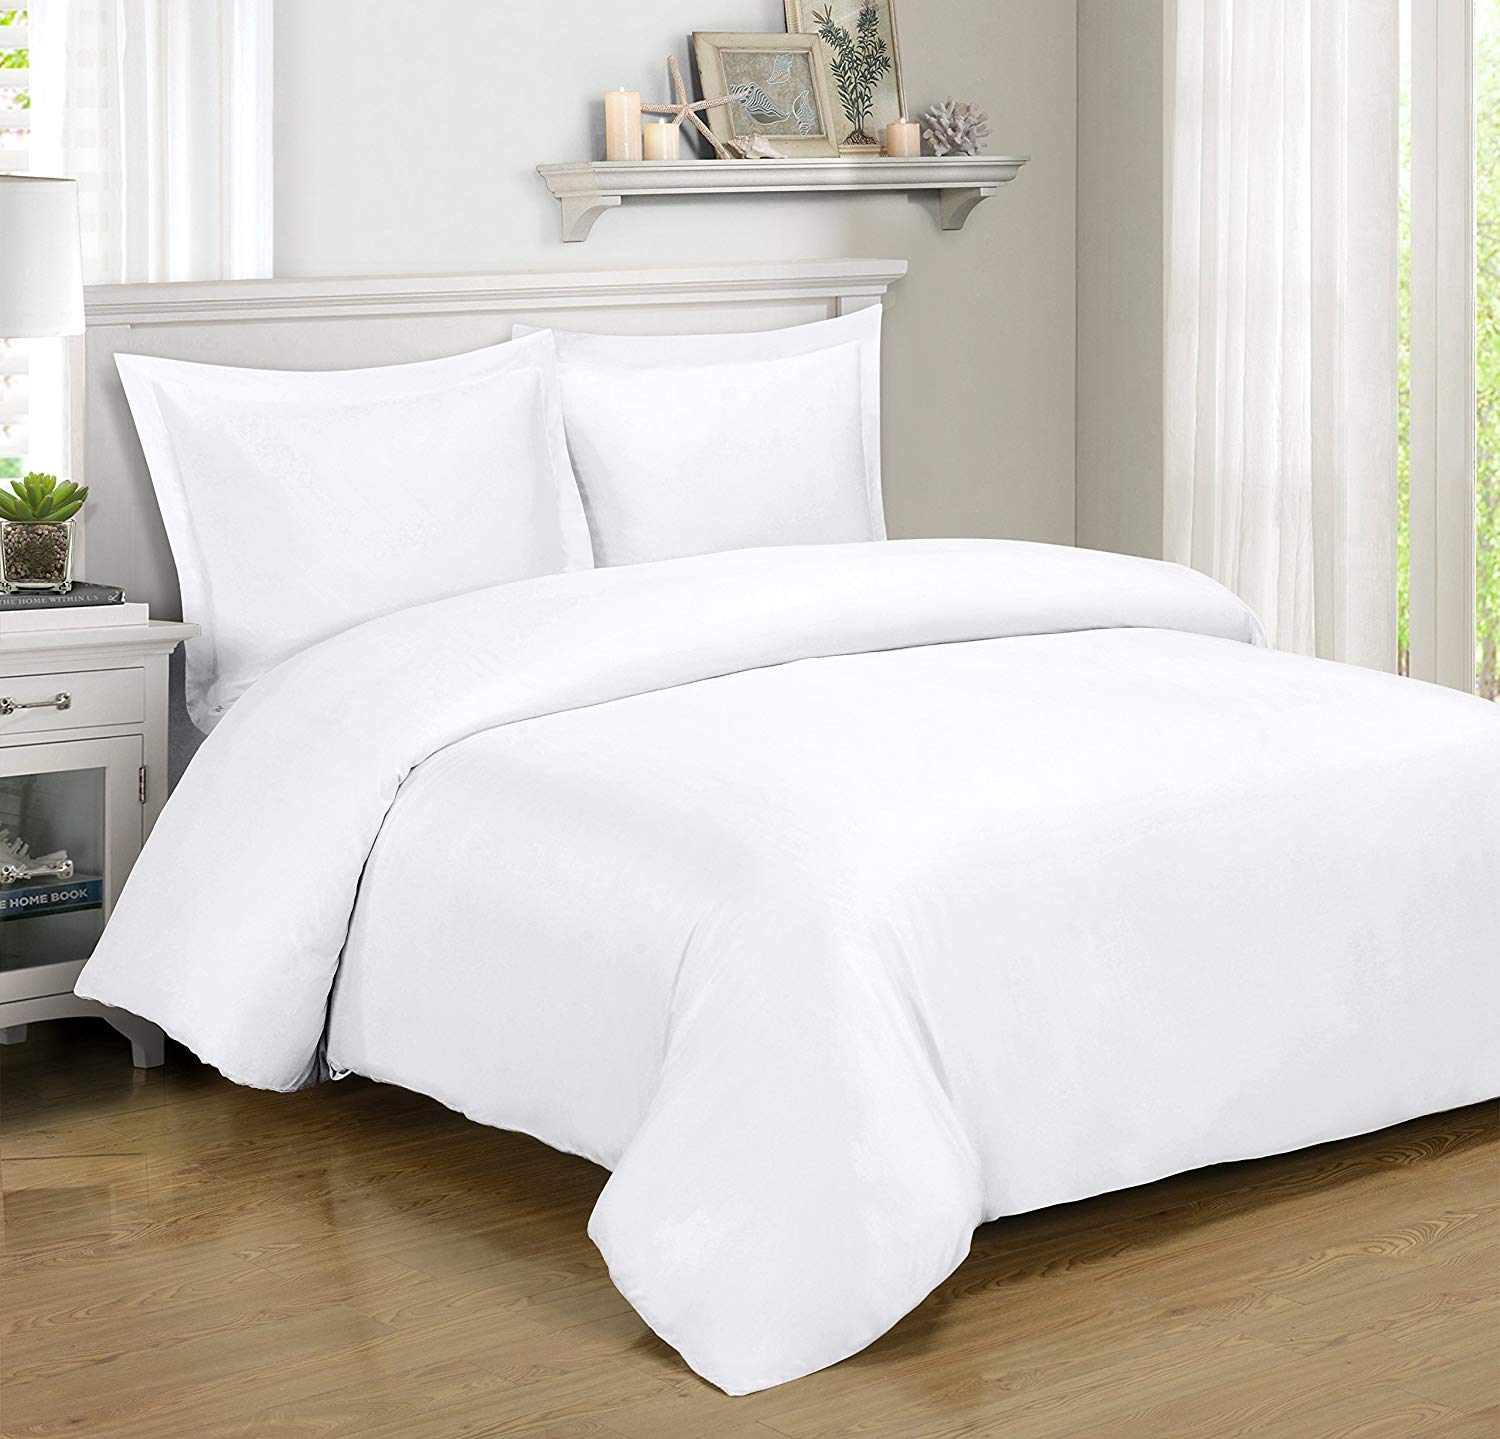 Royal Hotel BAMBOO Duvet Cover 100% BAMBOO Viscose Comforter Cover - Duvet Cover Set with Corner Ties and Button Closer, King/Cal King size White by Royal Hotel (Image #1)